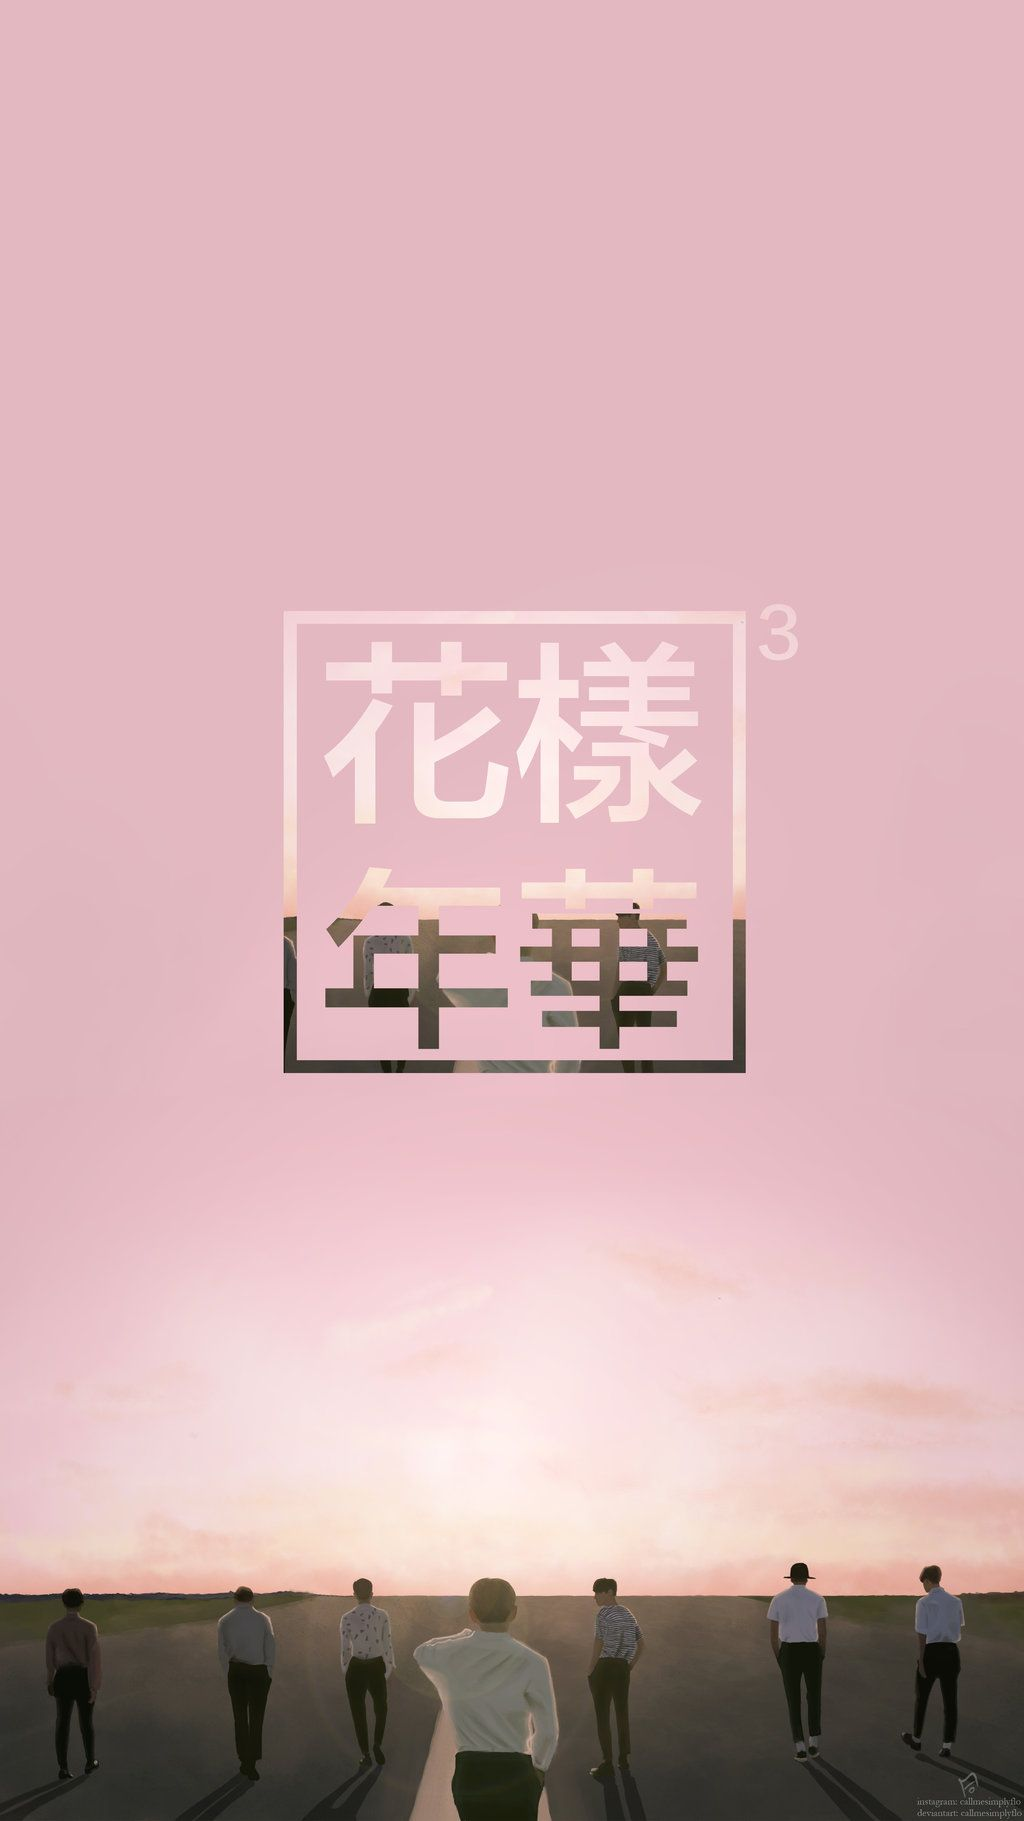 Young Forever Wallpaper For Phone Bts Wallpaper Bts Hyyh Bts Backgrounds Bts wallpaper hyyh young forever